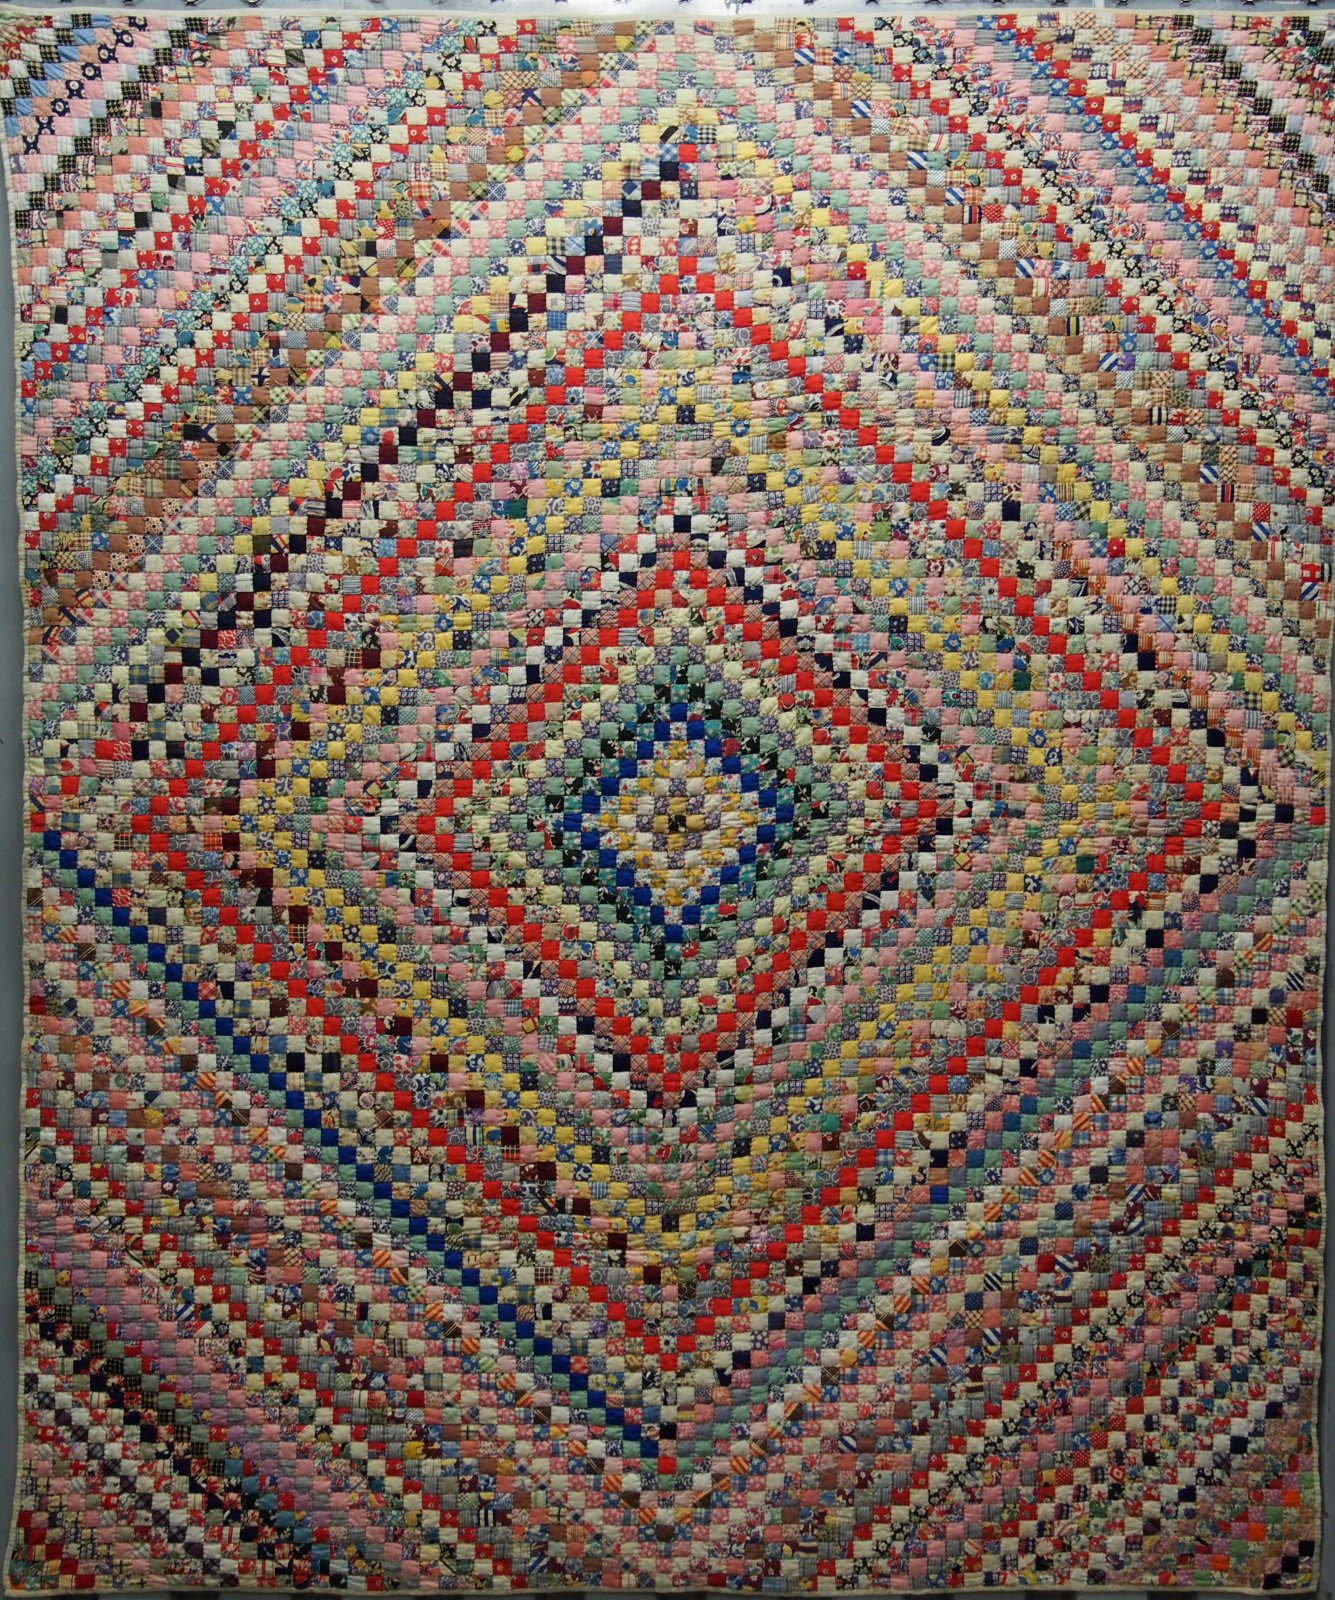 Postage stamp trip around the world antique quilt for What to do with an old quilt